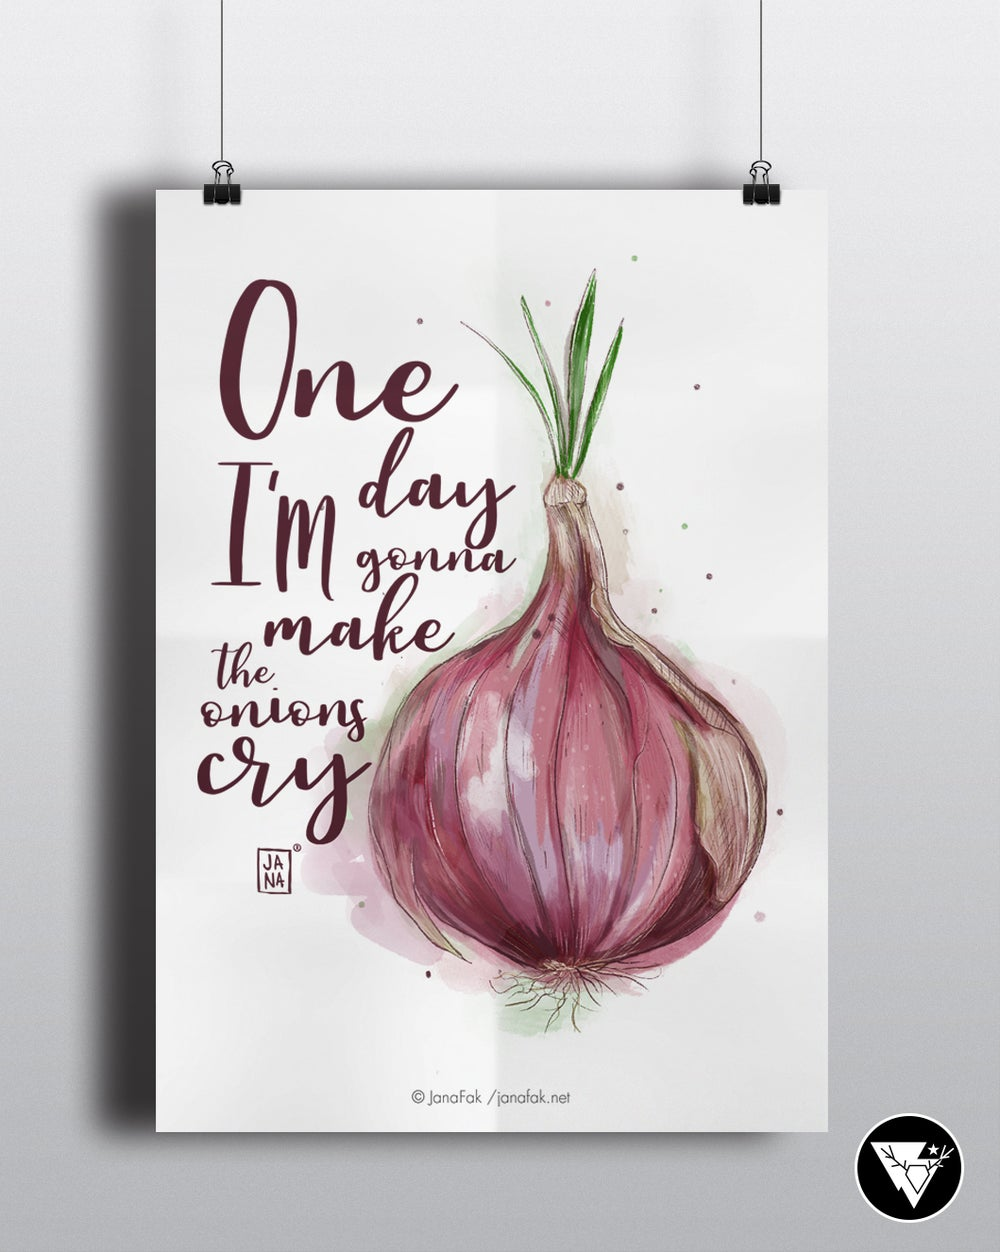 Image of Onions cry /art print